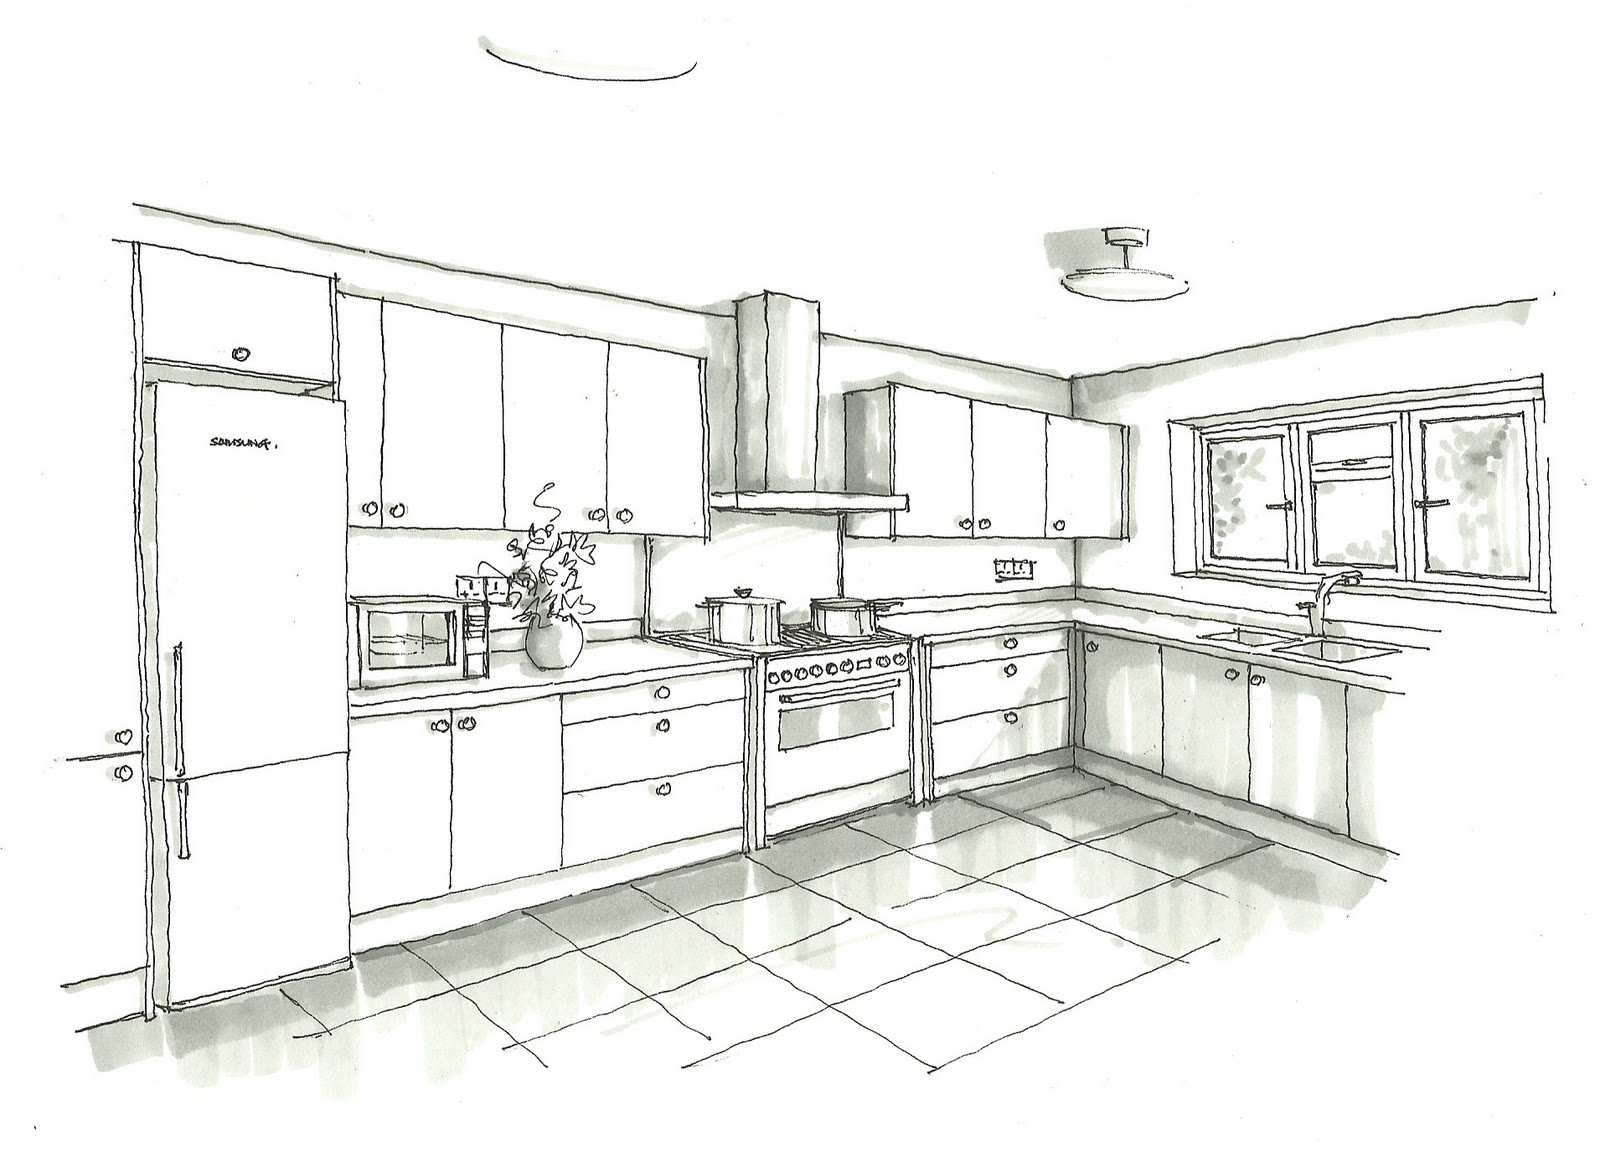 26 Amazing Interior Designs Kitchen Sketches rbserviscom